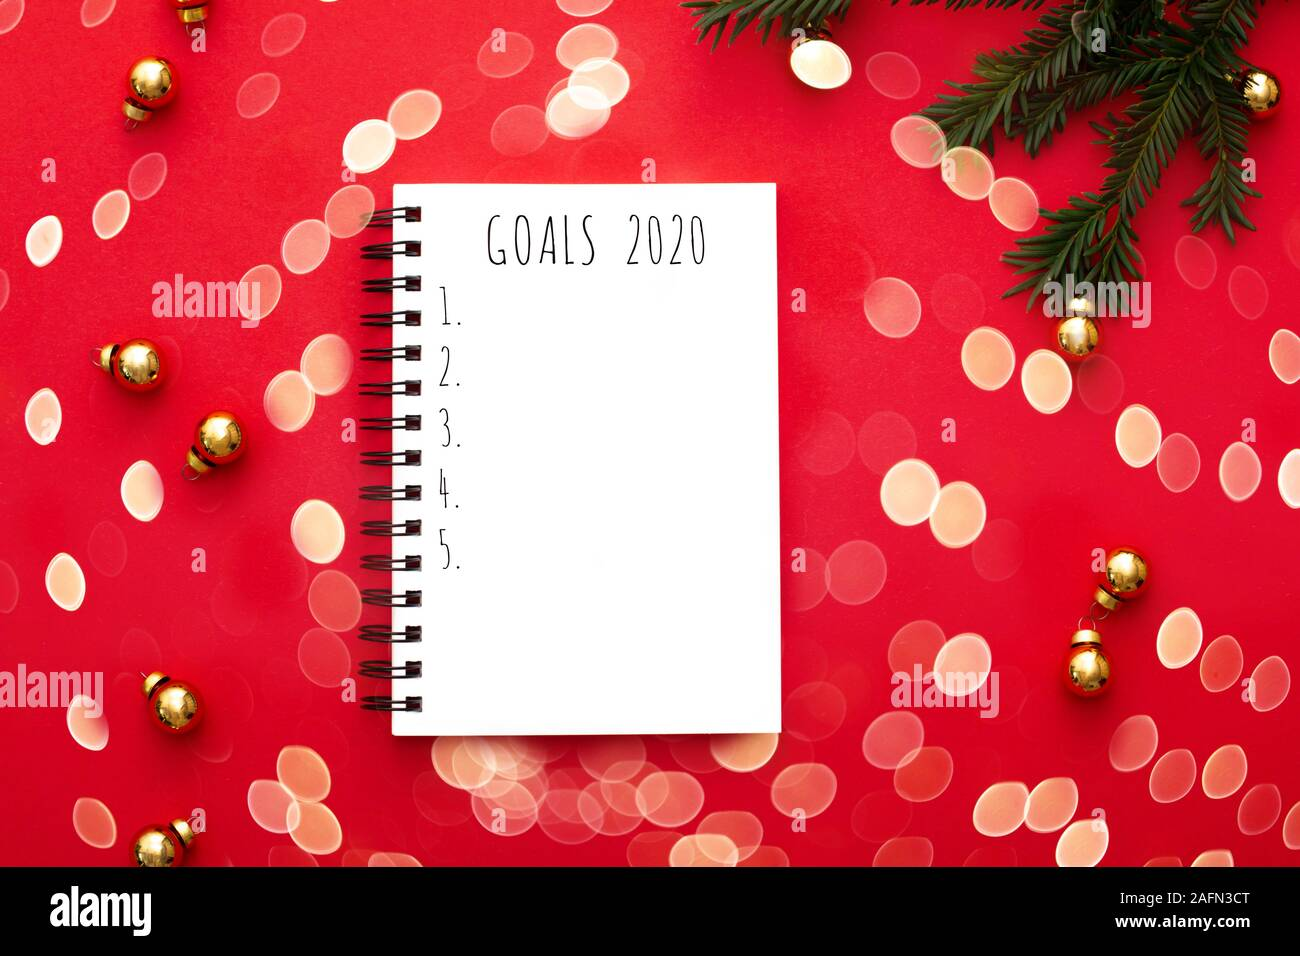 Christmas Brunch 2020 Notebook with 2020 goals on red background with golden christmas